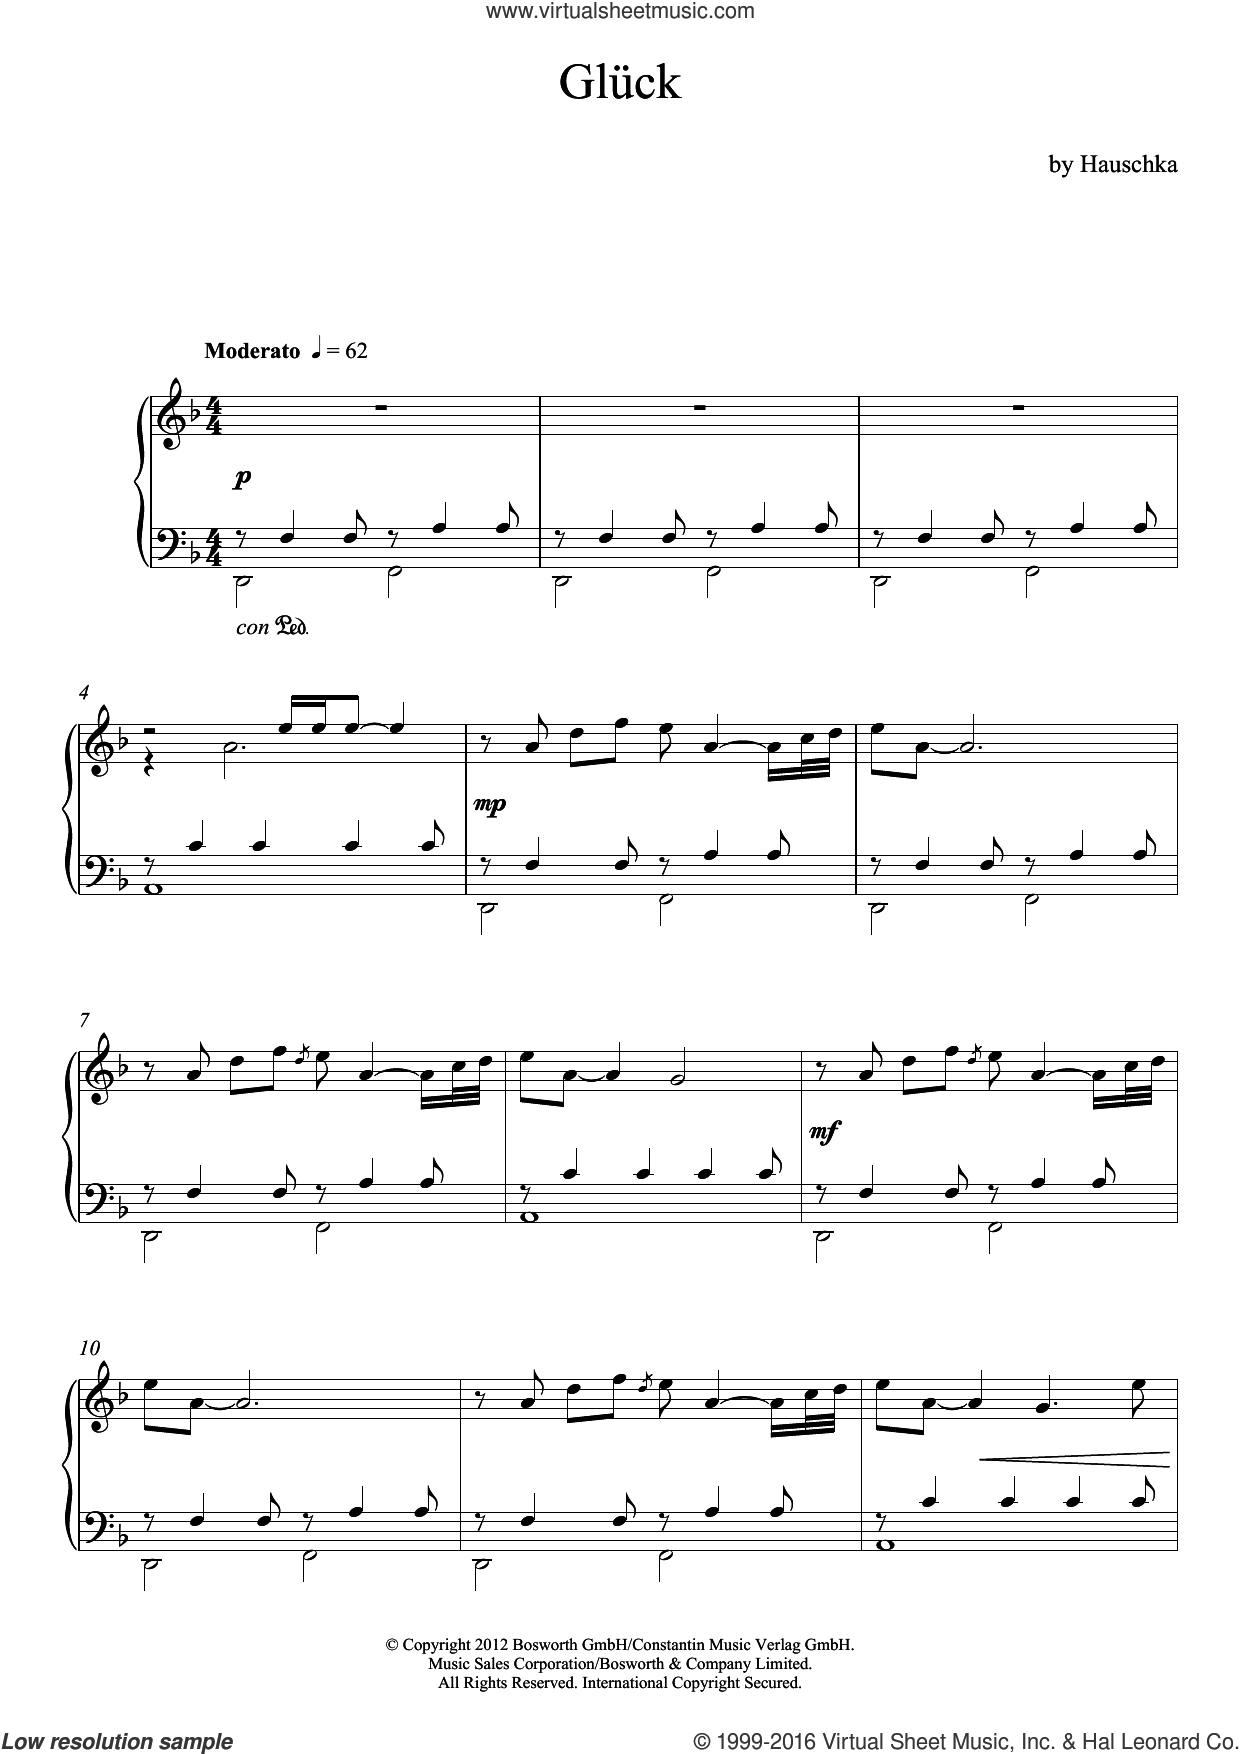 Glueck (Theme) sheet music for piano solo by Volker Bertelmann and Hauschka. Score Image Preview.